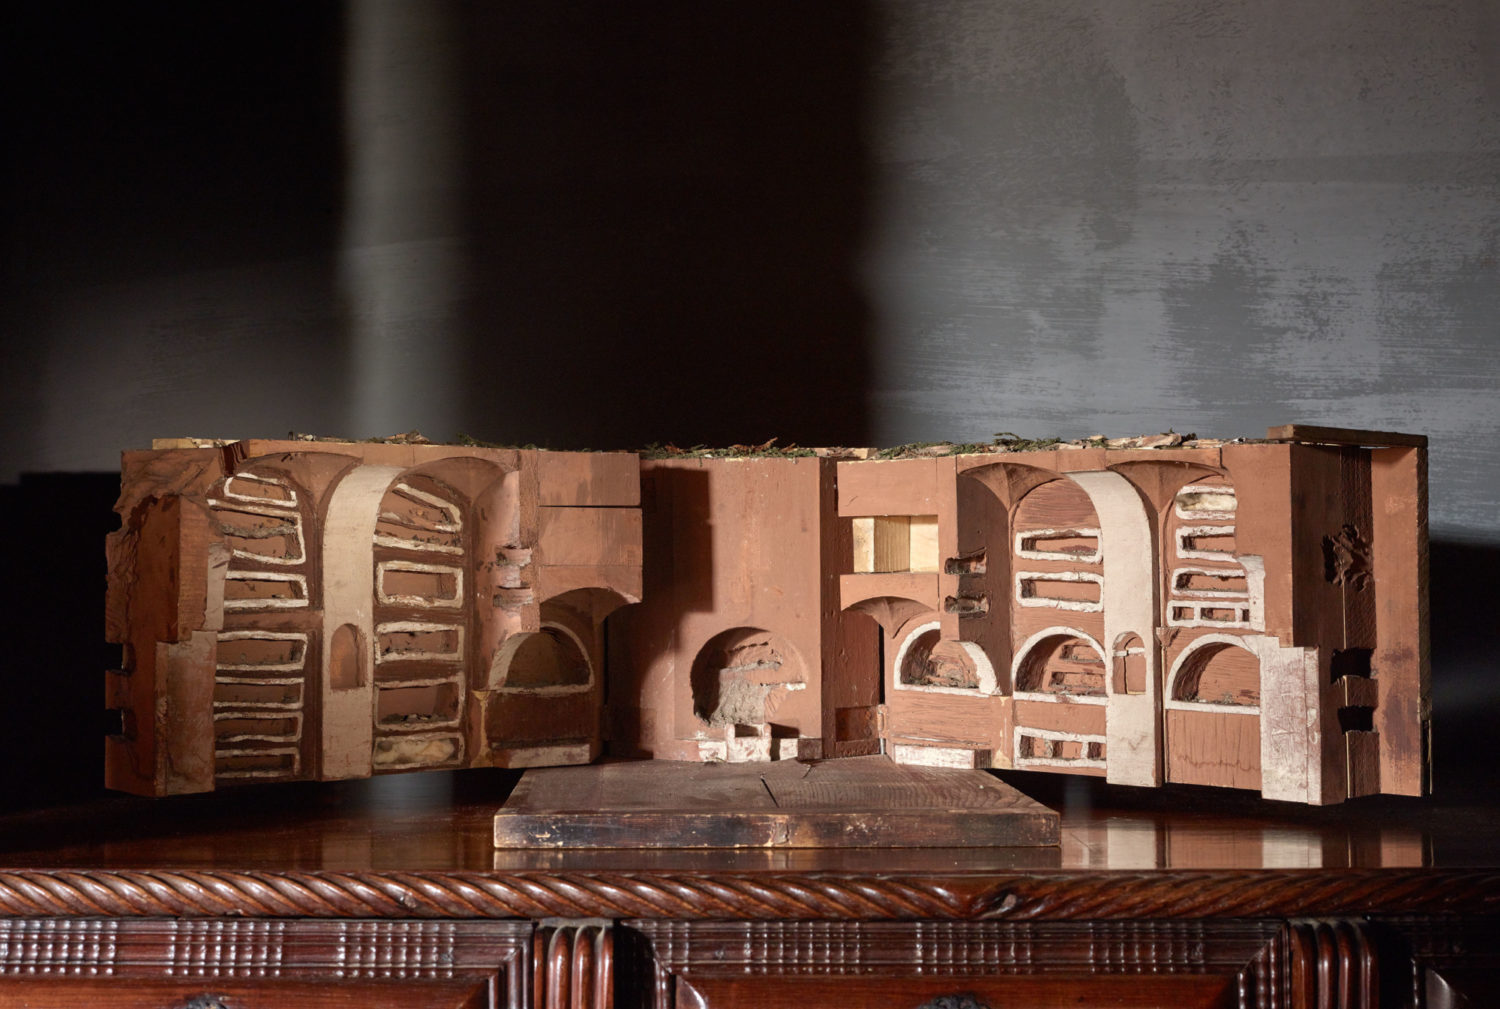 Architectural model of a classical temple